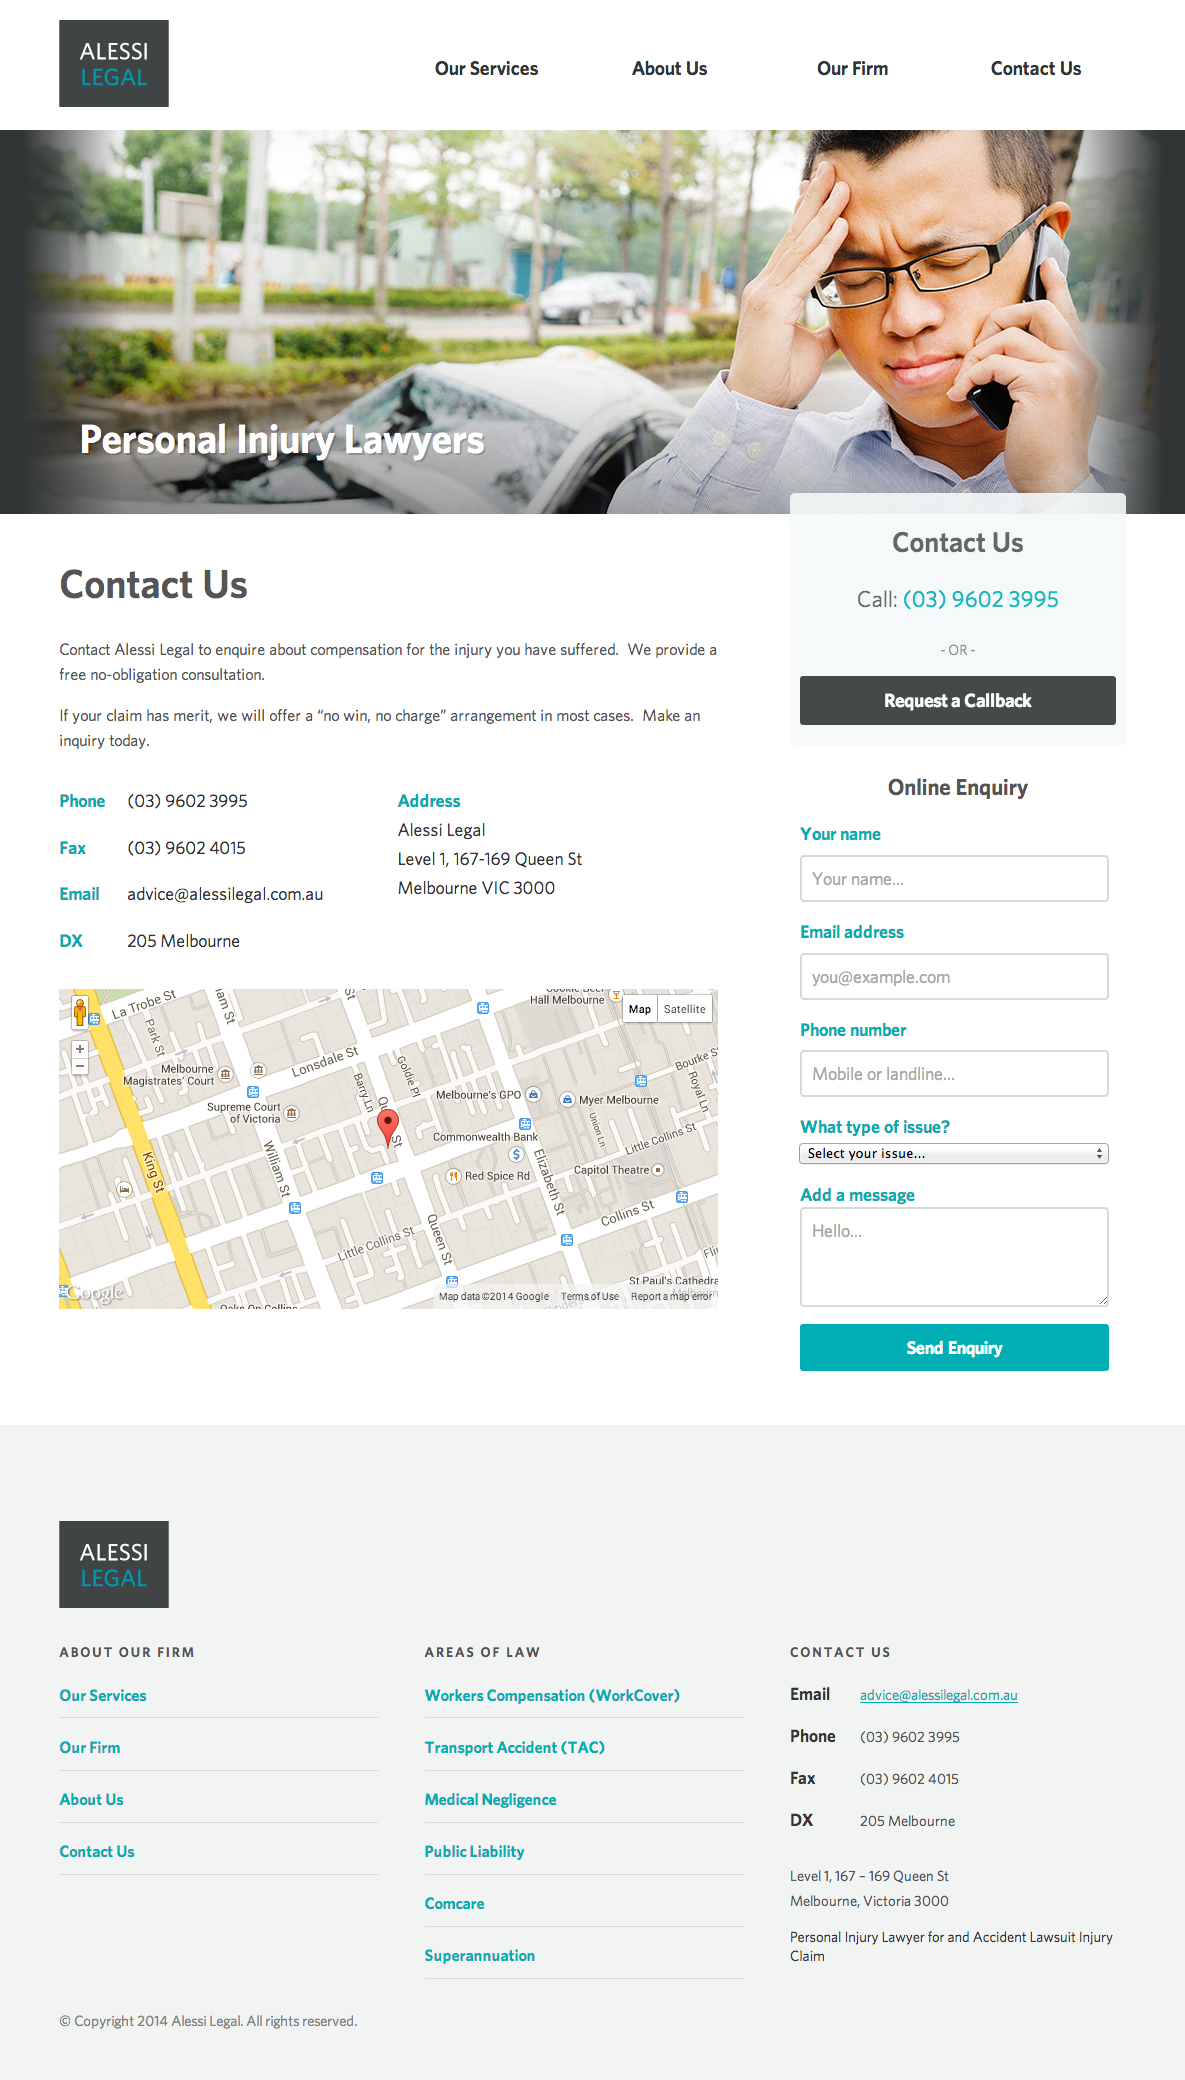 Alessi Legal website design gallery